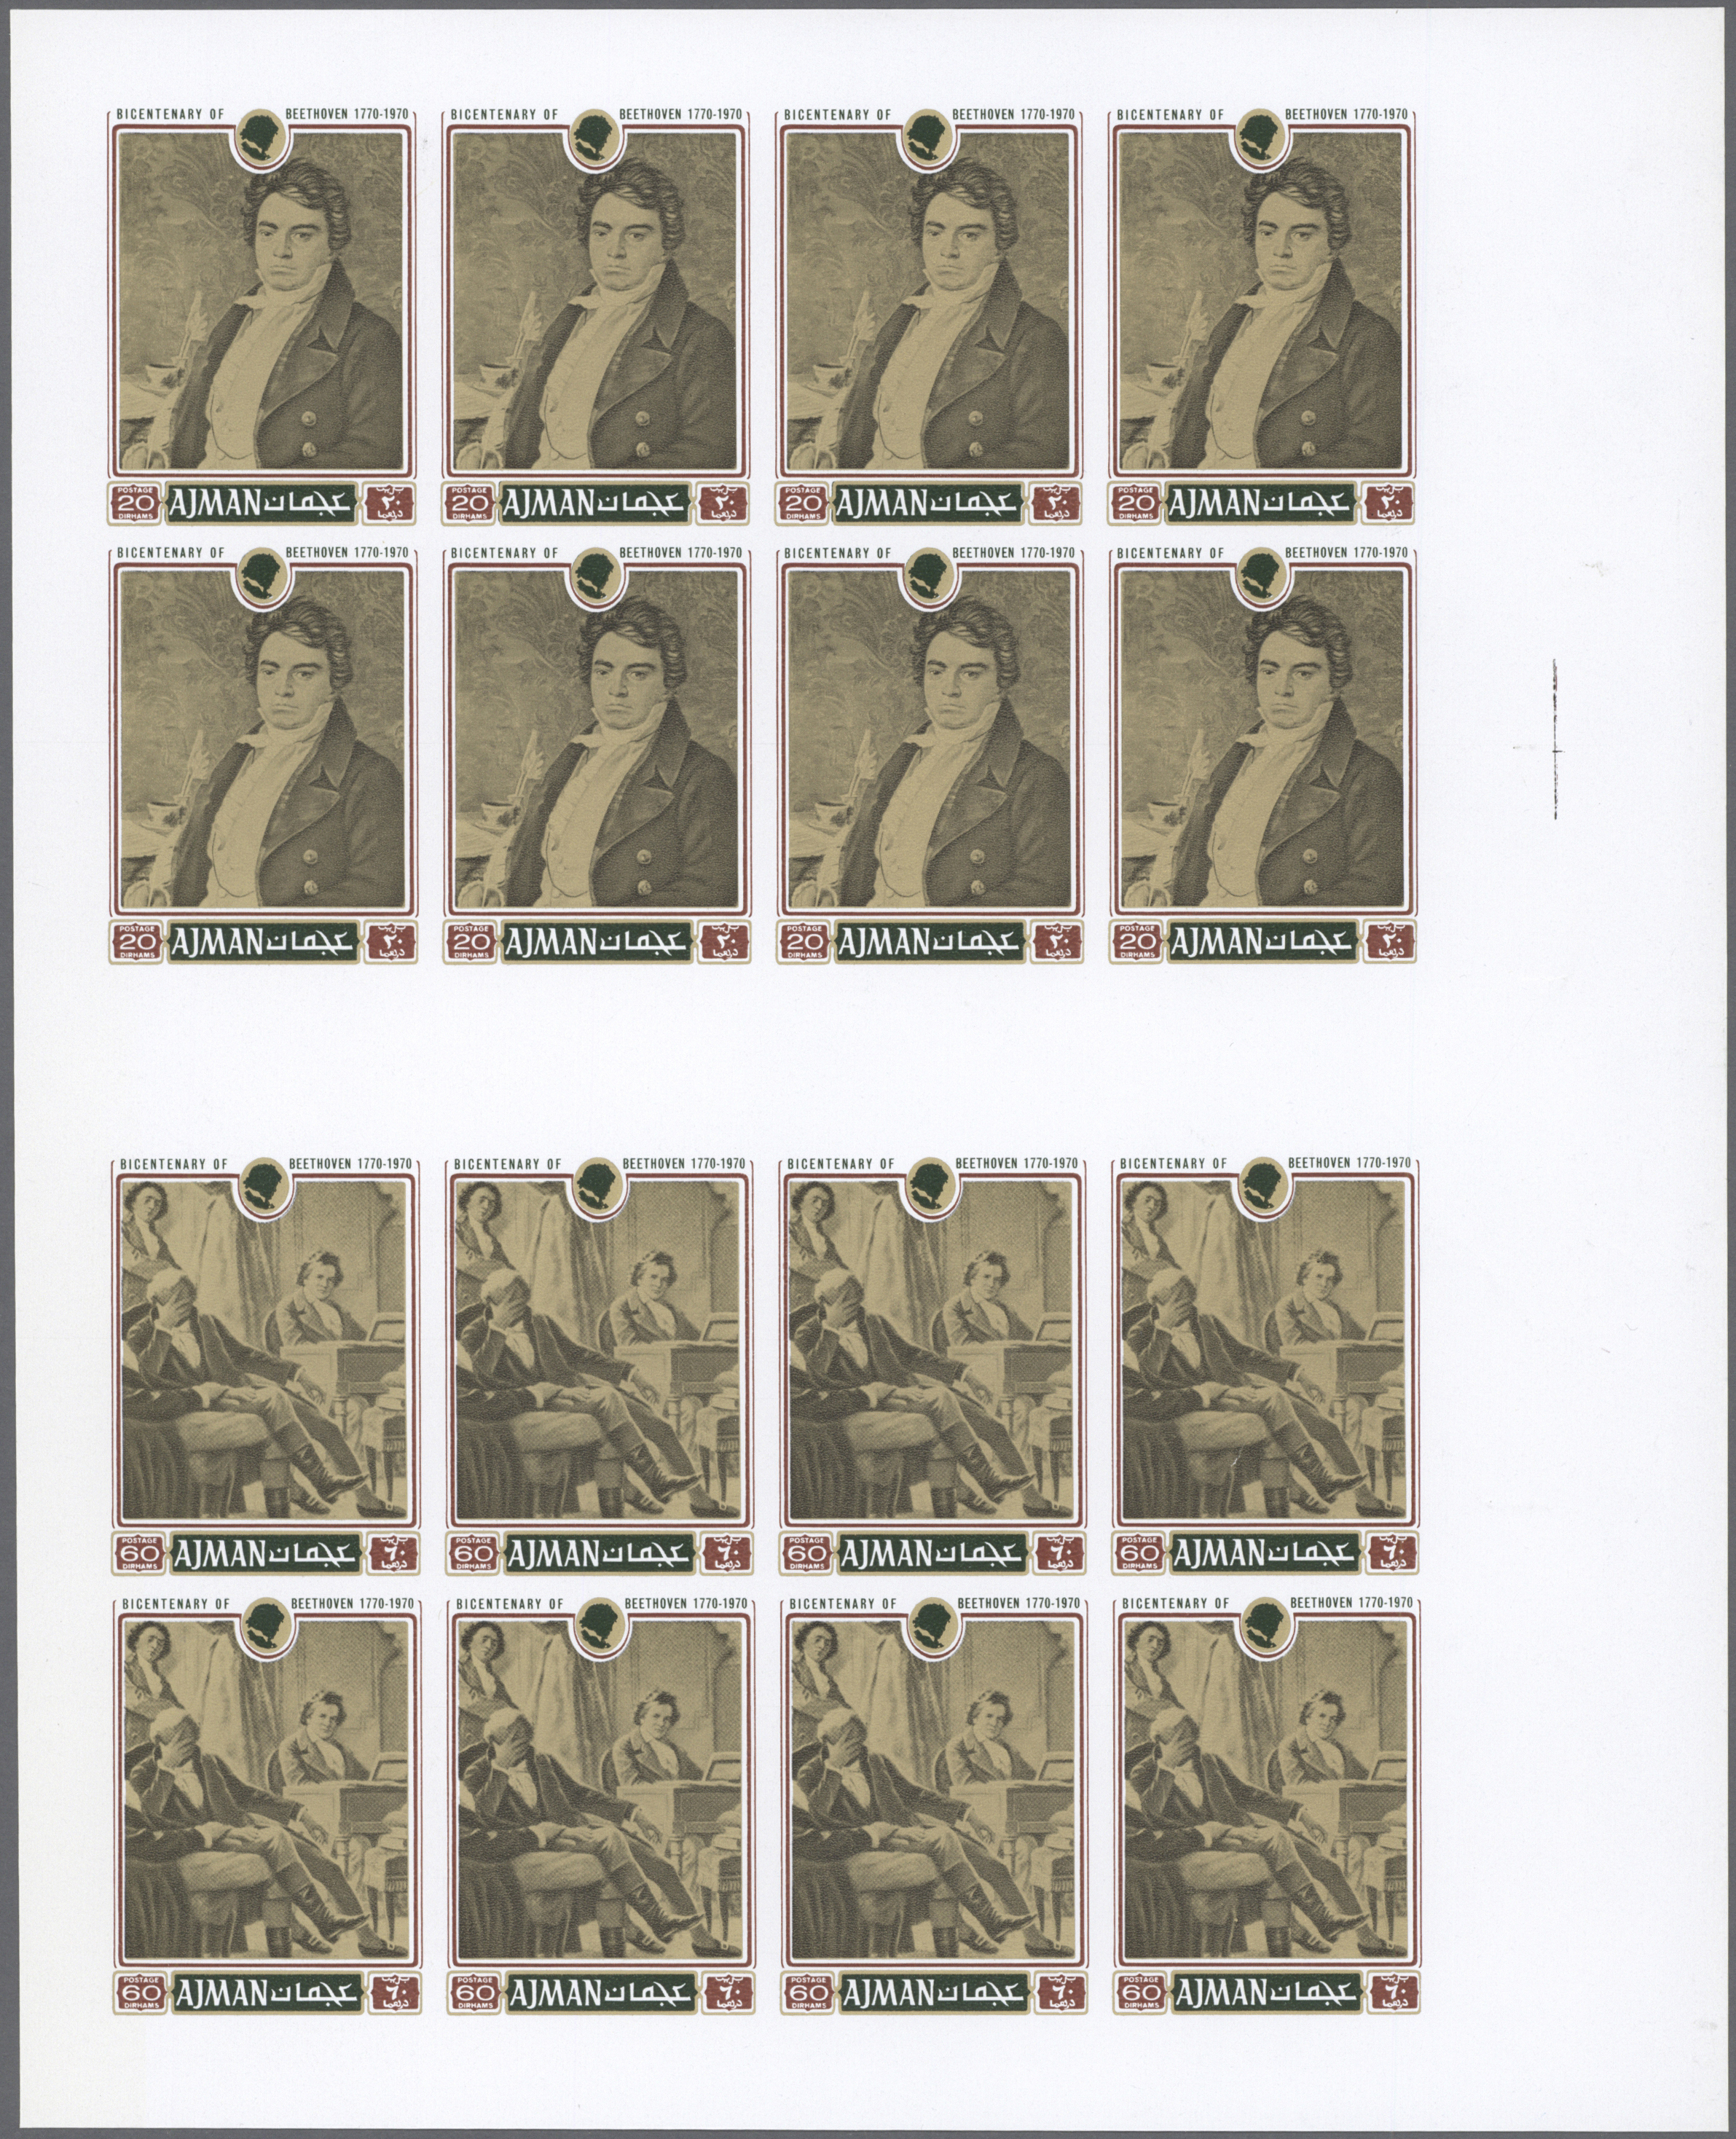 Lot 05007 - adschman / ajman  -  Auktionshaus Christoph Gärtner GmbH & Co. KG Sale #49 Single lots Asia, Thematics, Oversea, Europe, Old German States, Third Reich, German Colonies and the Federal Republic of Germany